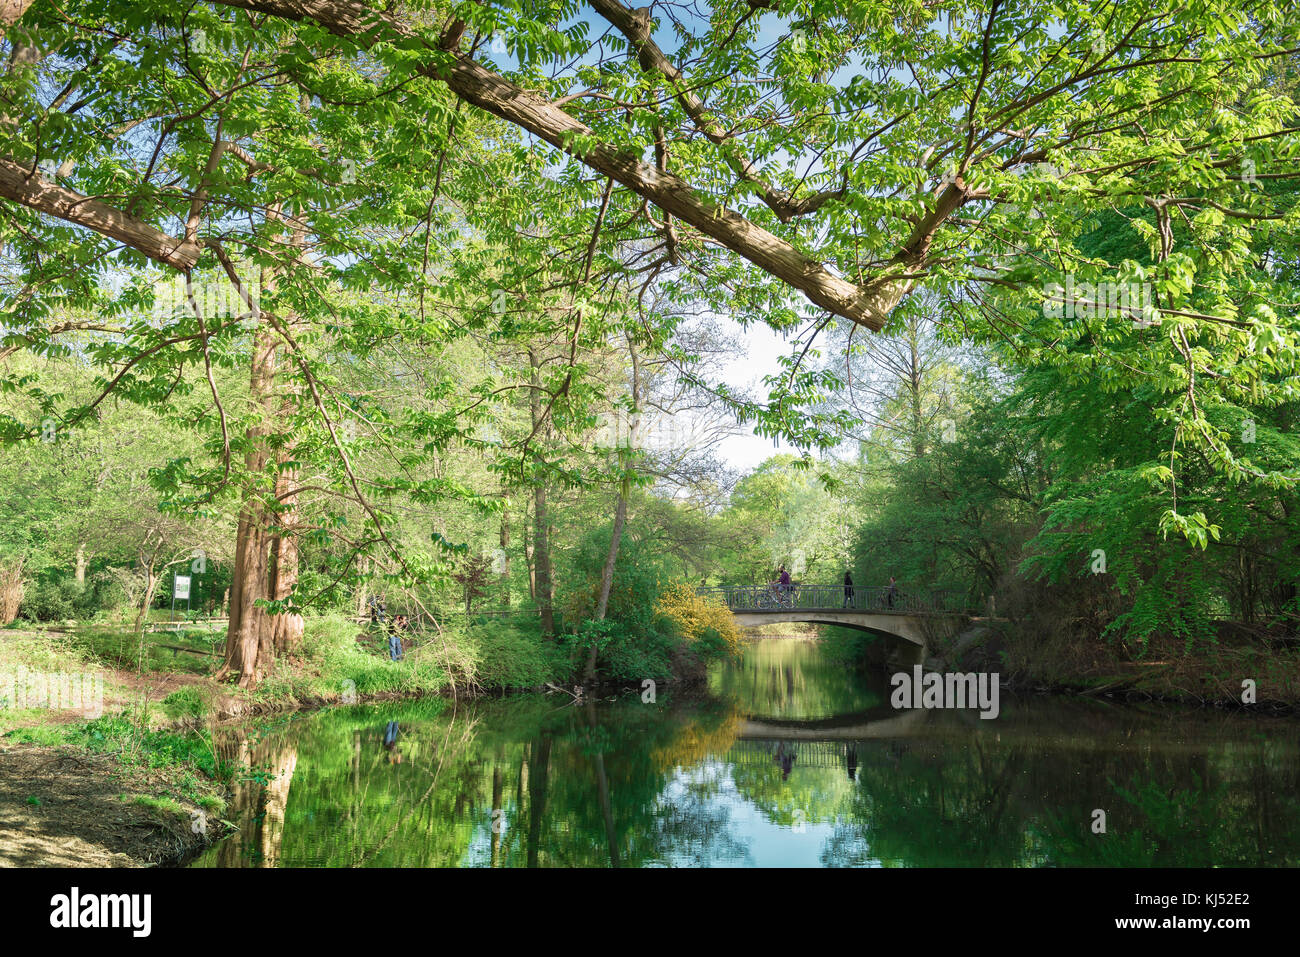 Tiergarten Berlin, a lake in the centre of the Tiergarten park at spring time, Berlin, Germany. - Stock Image